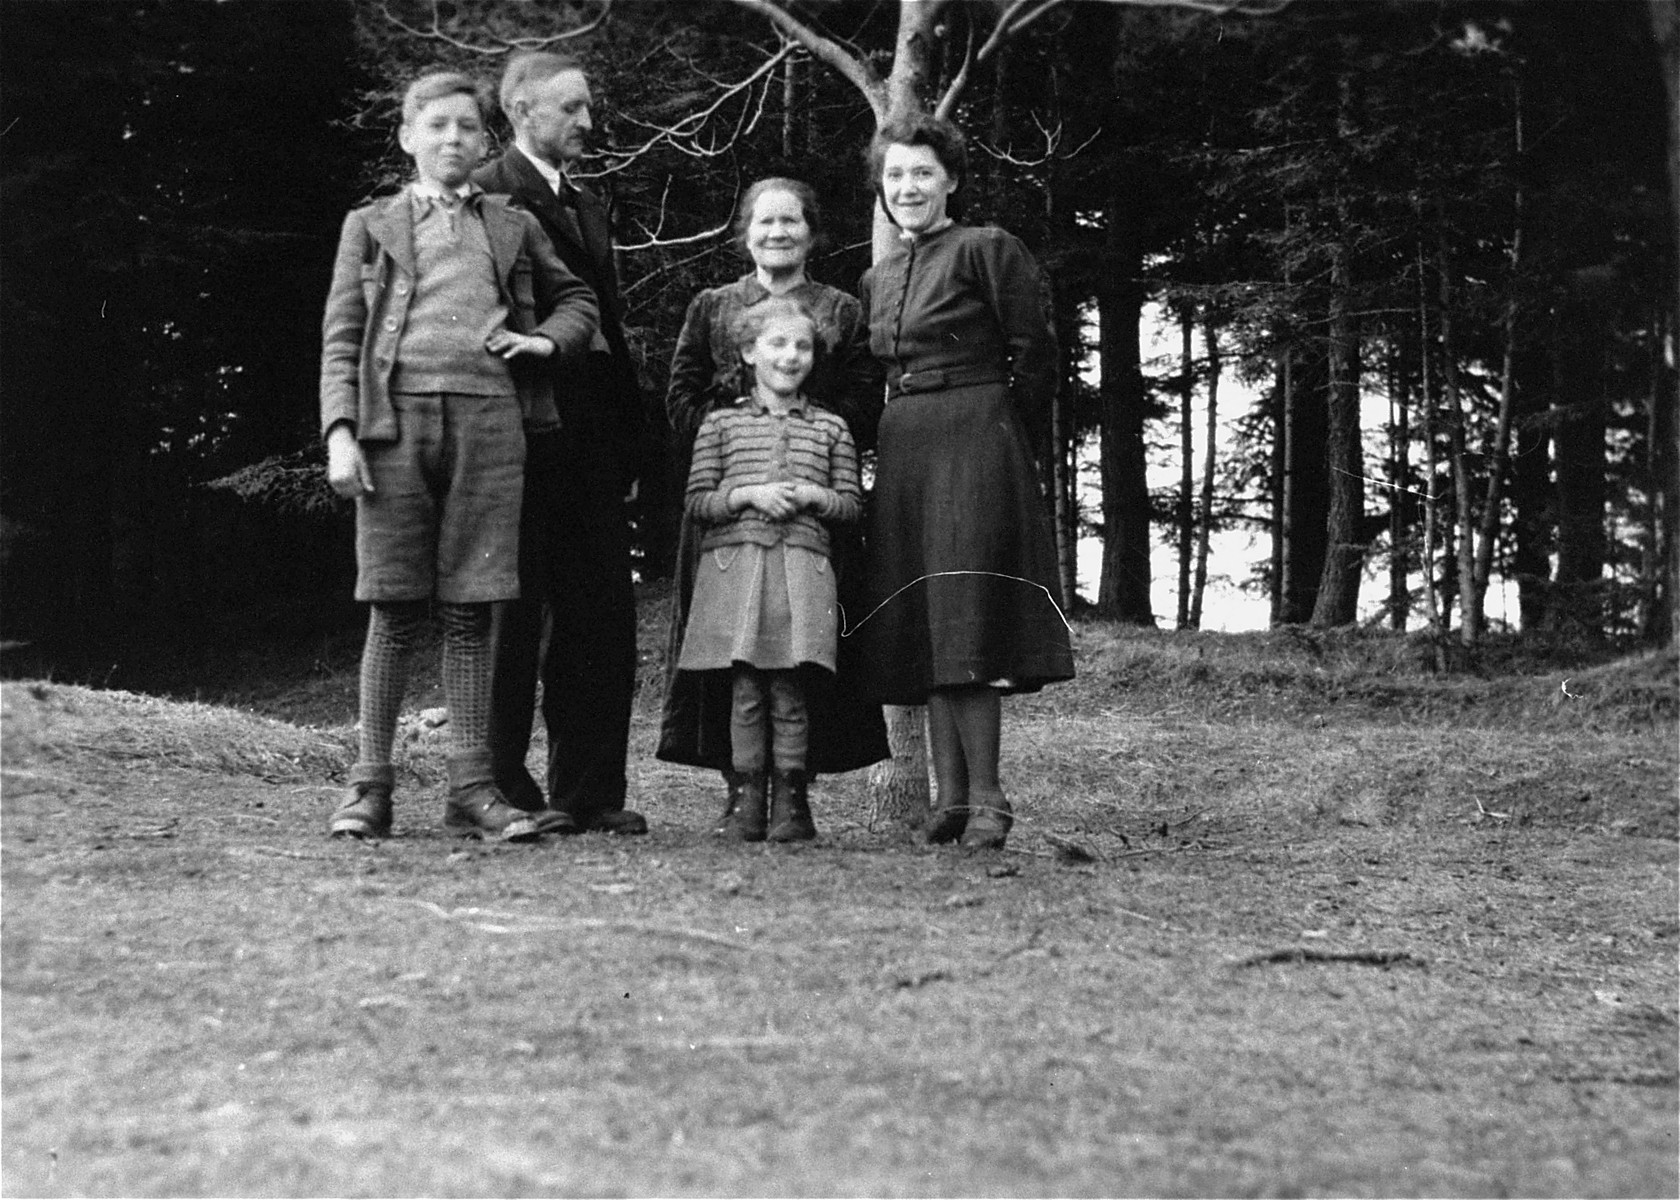 Dorota Fischbein poses with members of the Koszarski family who sheltered her during the war.